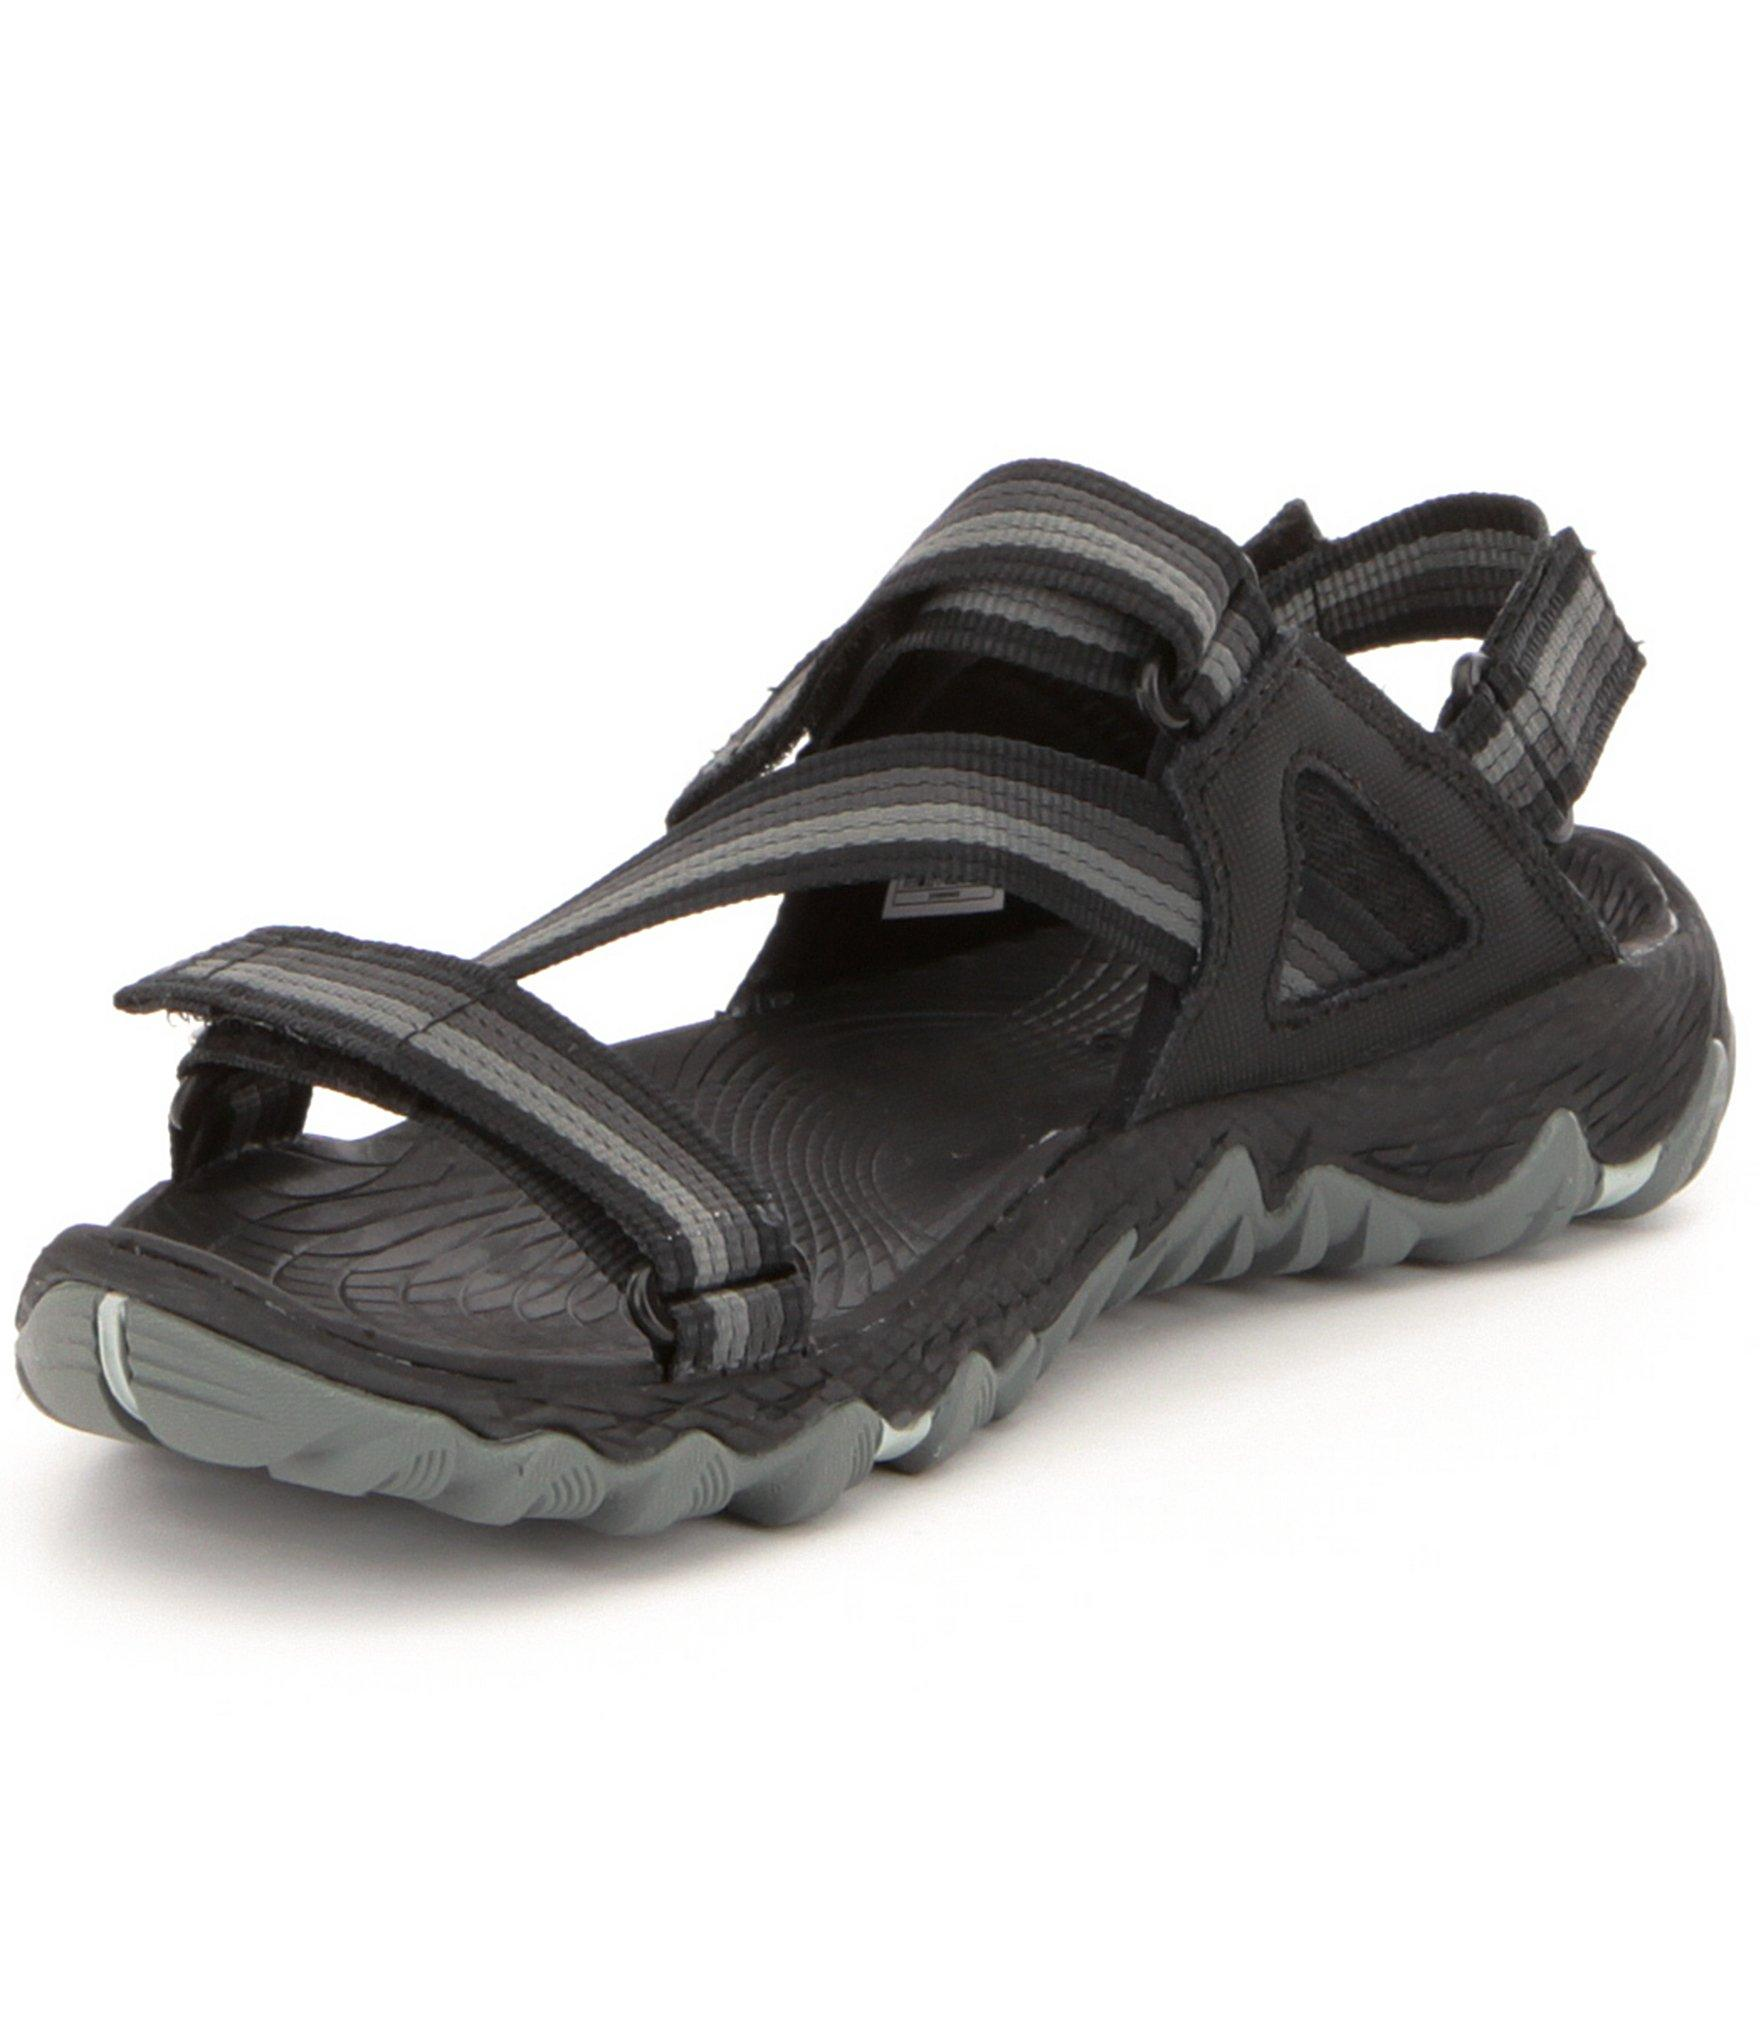 7324600a27fc Lyst - Merrell Women ́s All Out Blaze Hydro Hiking Sandals in Black